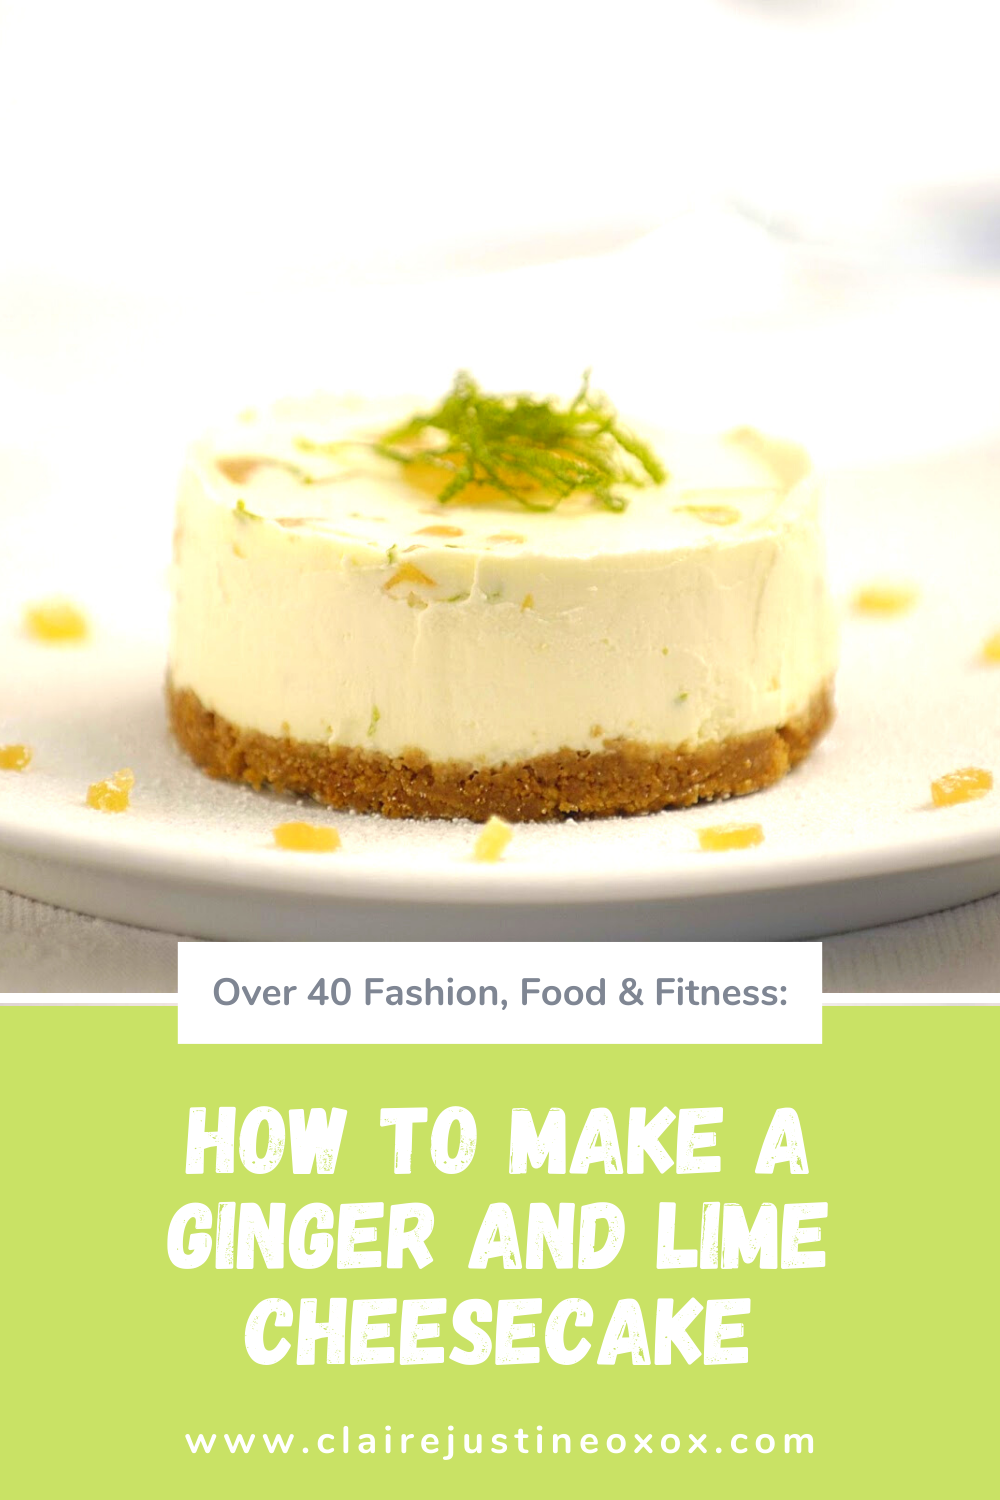 How To Make A Ginger And Lime Cheesecake